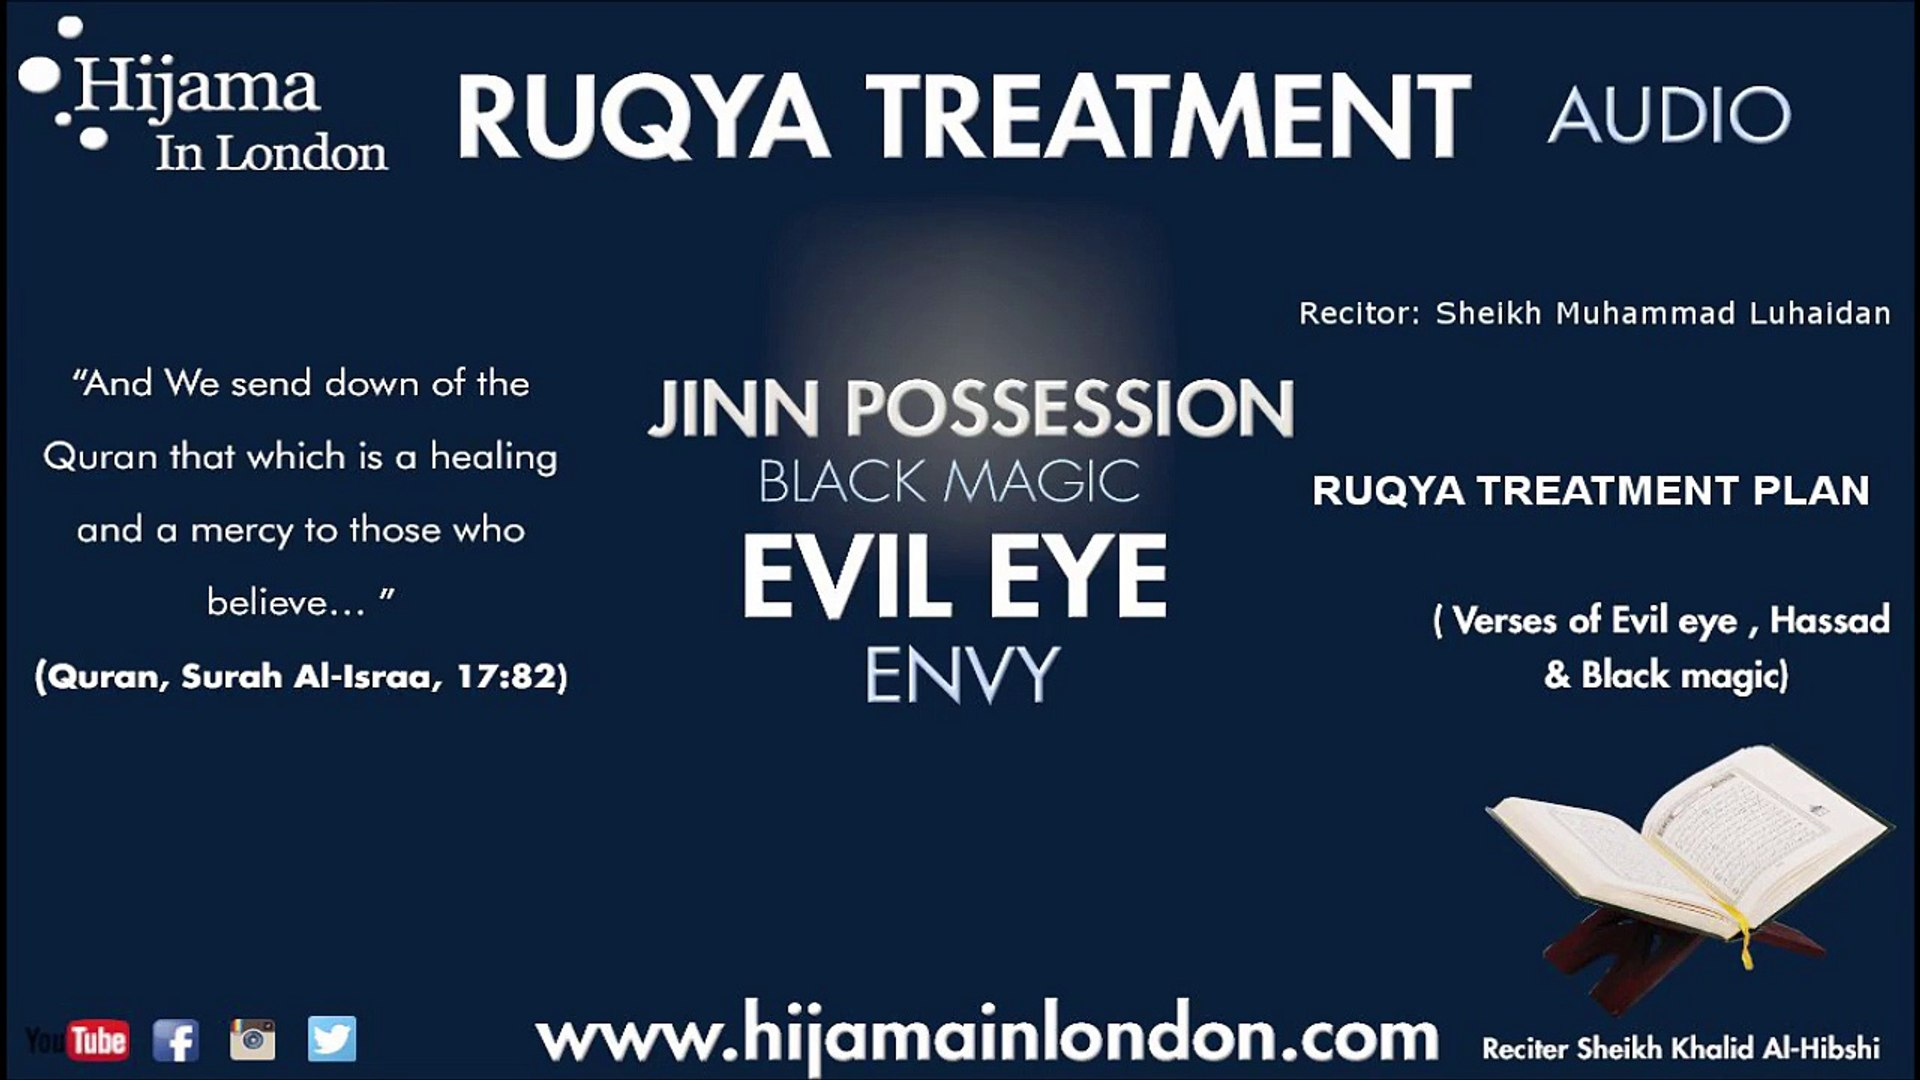 Ruqya Dua Treatment Plan Shir Ayn Jinn Possession Sheikh Muhammad Luhaidan